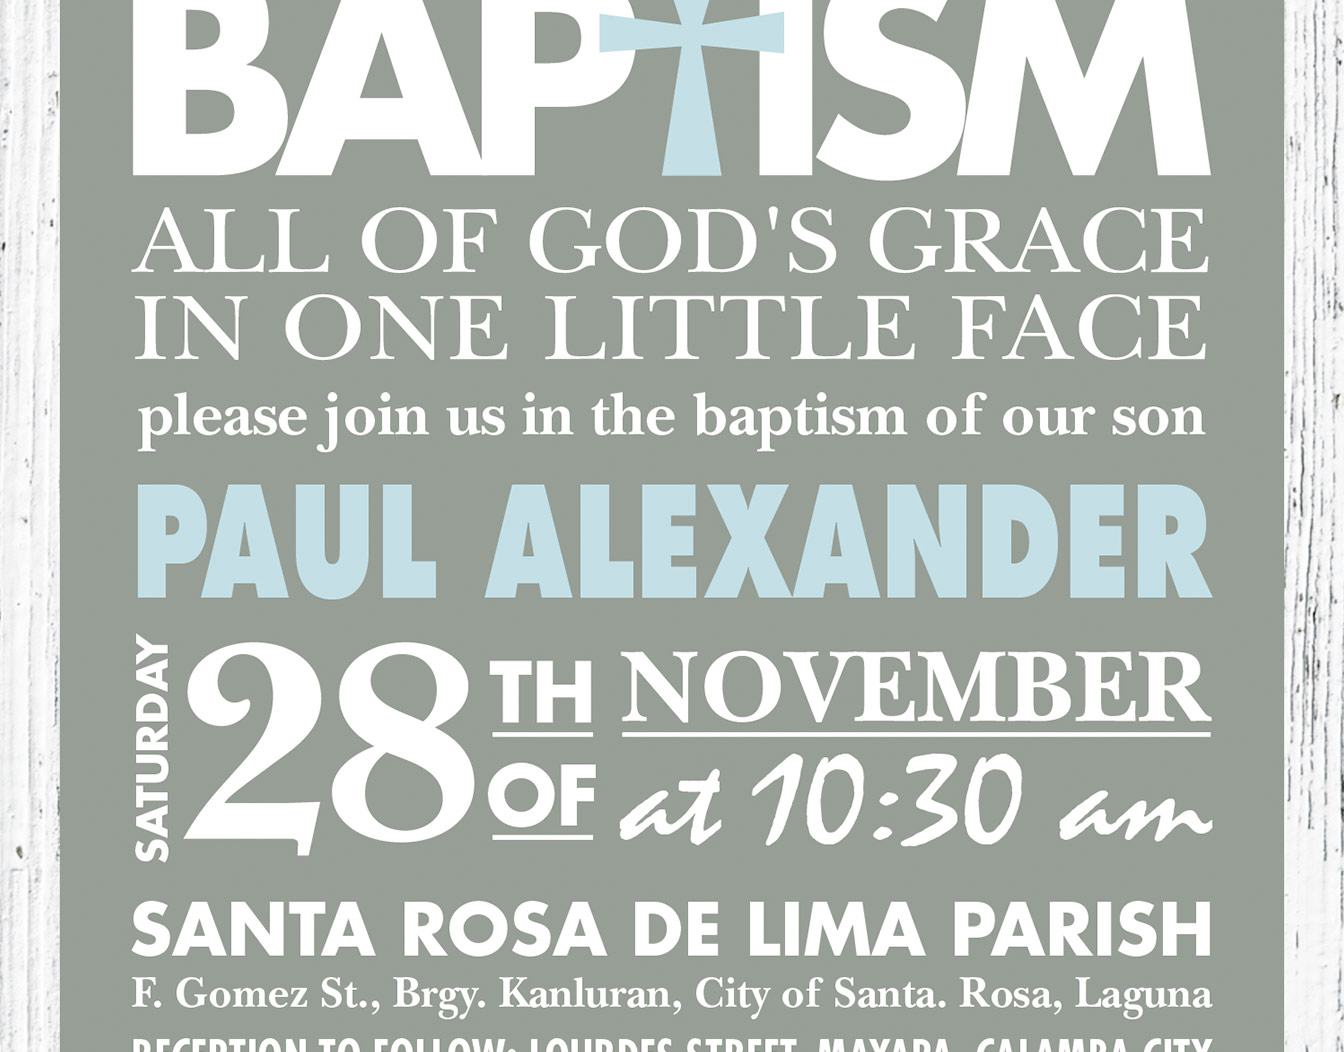 Greenish baptism invitation with dense text